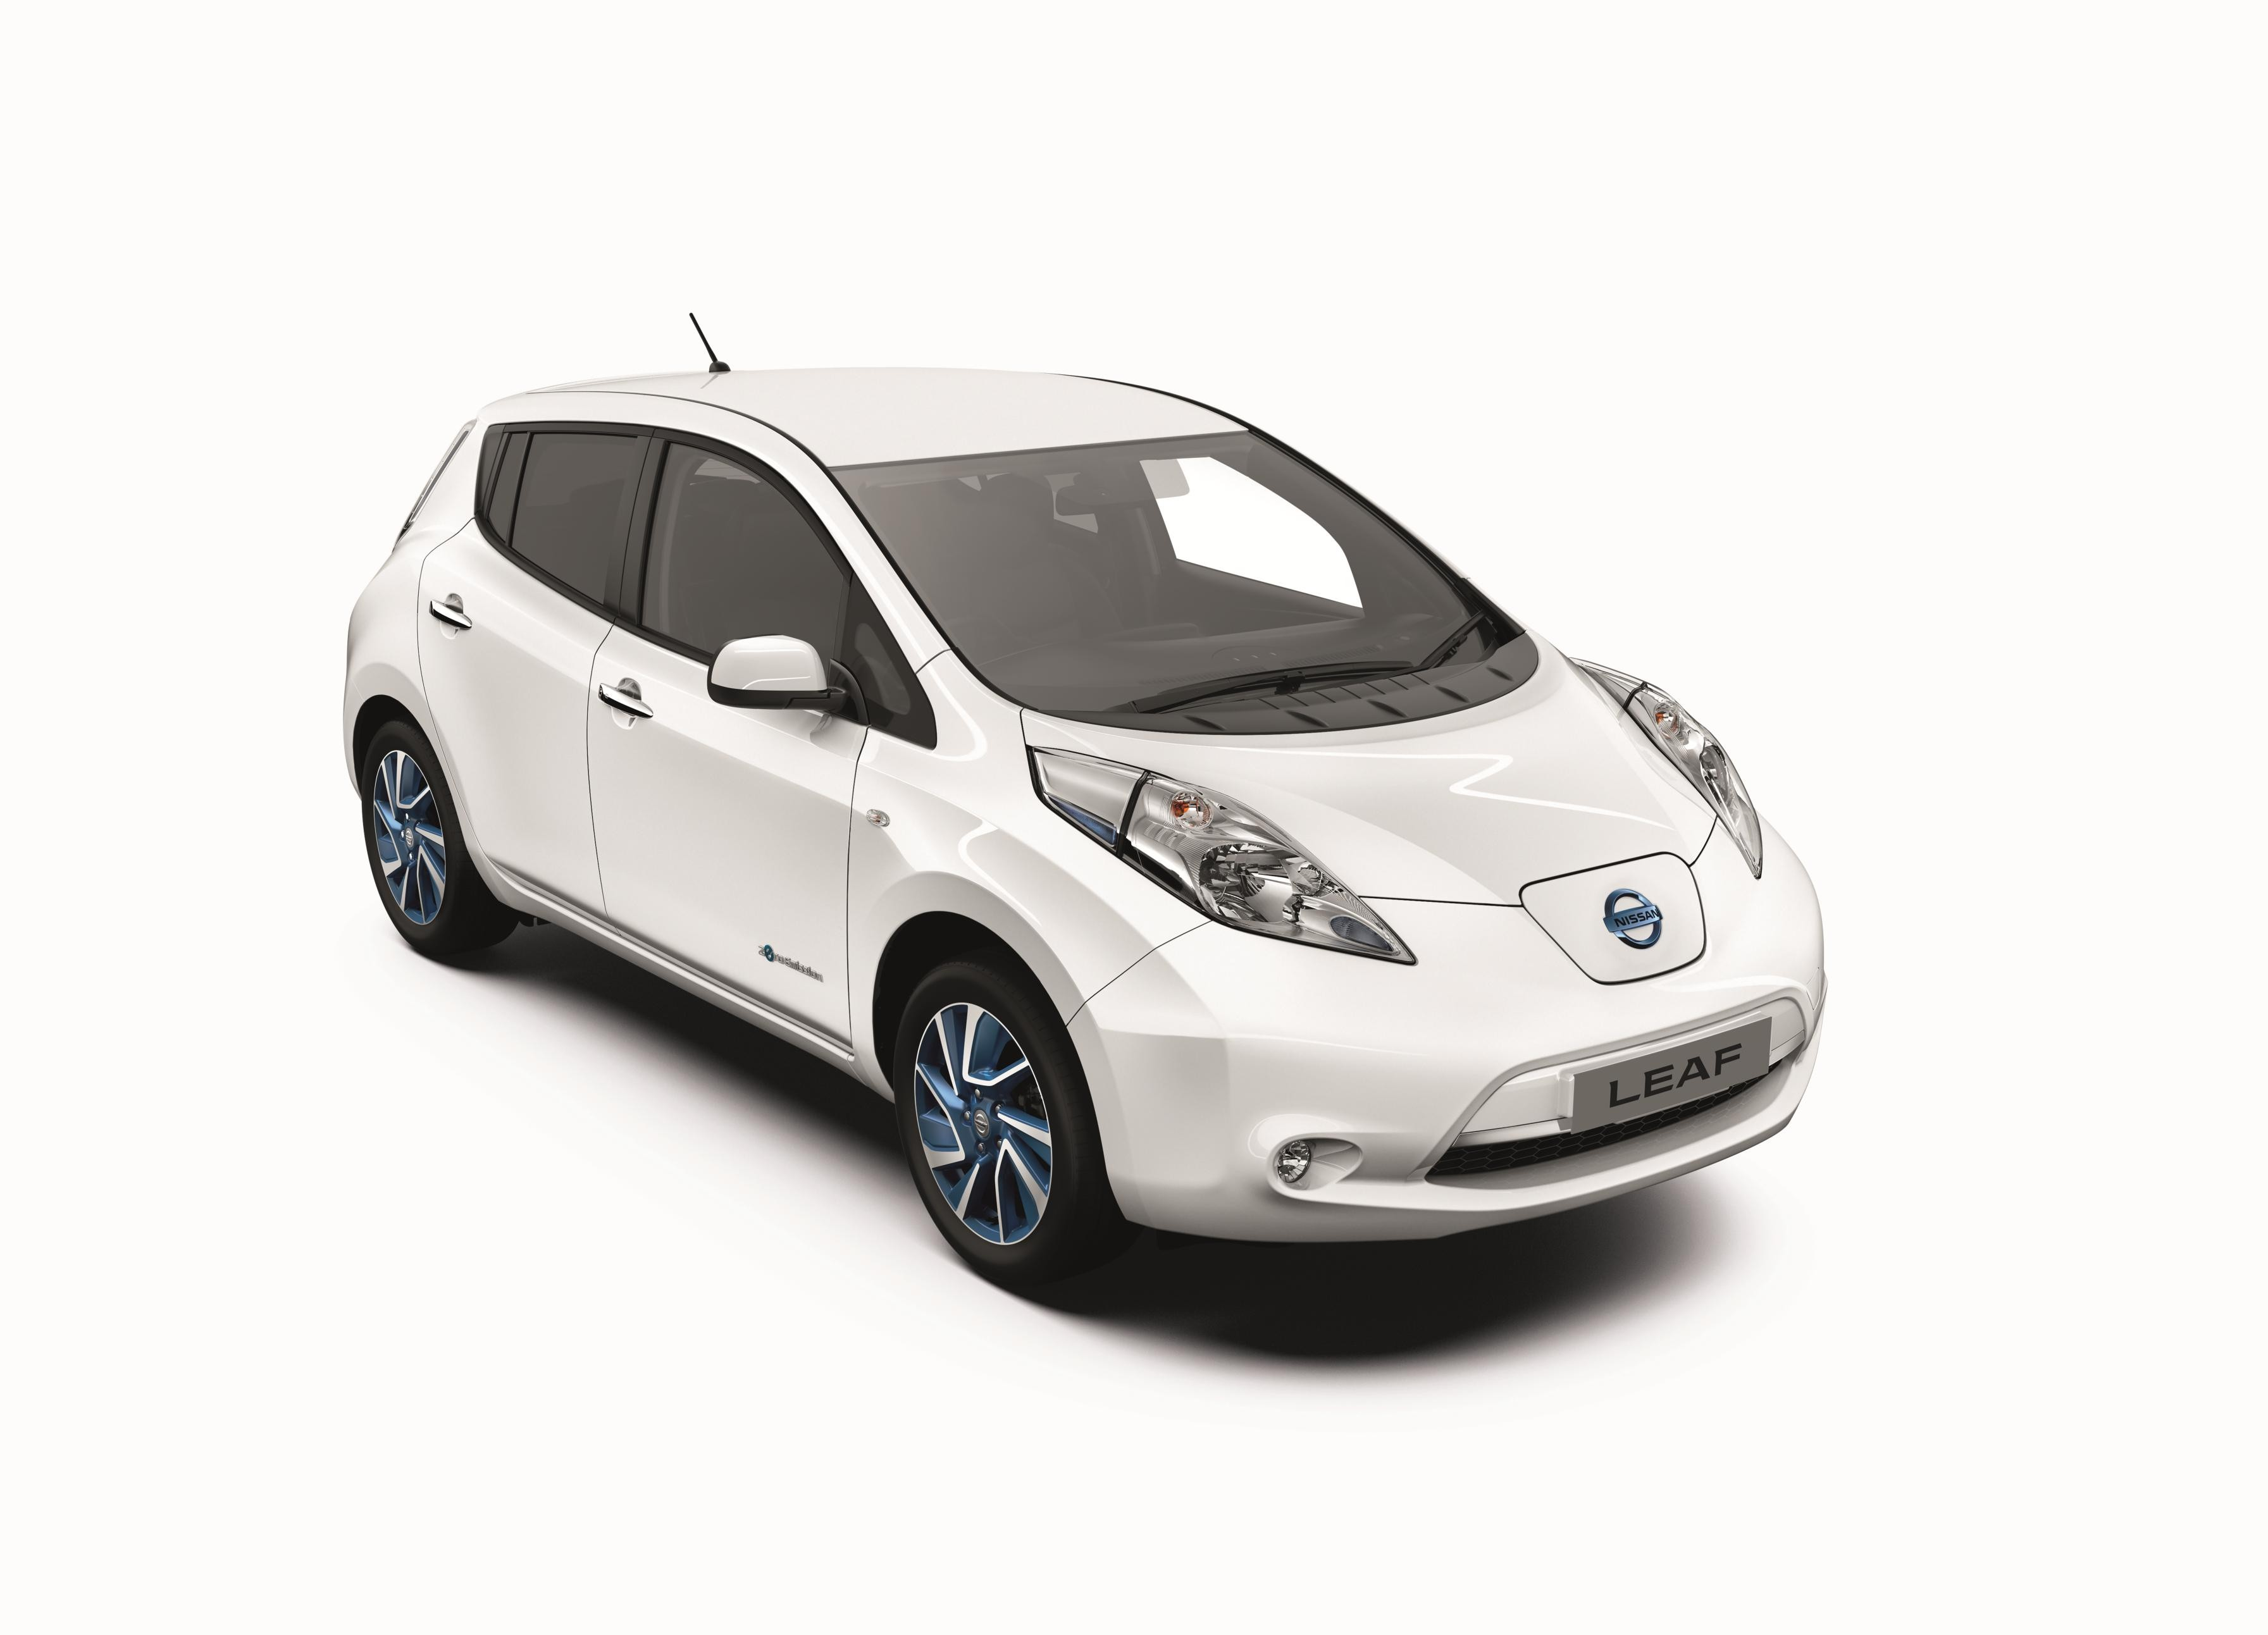 2015 nissan leaf now available in acenta grade in the uk 2015 nissan leaf acenta uk spec vanachro Gallery